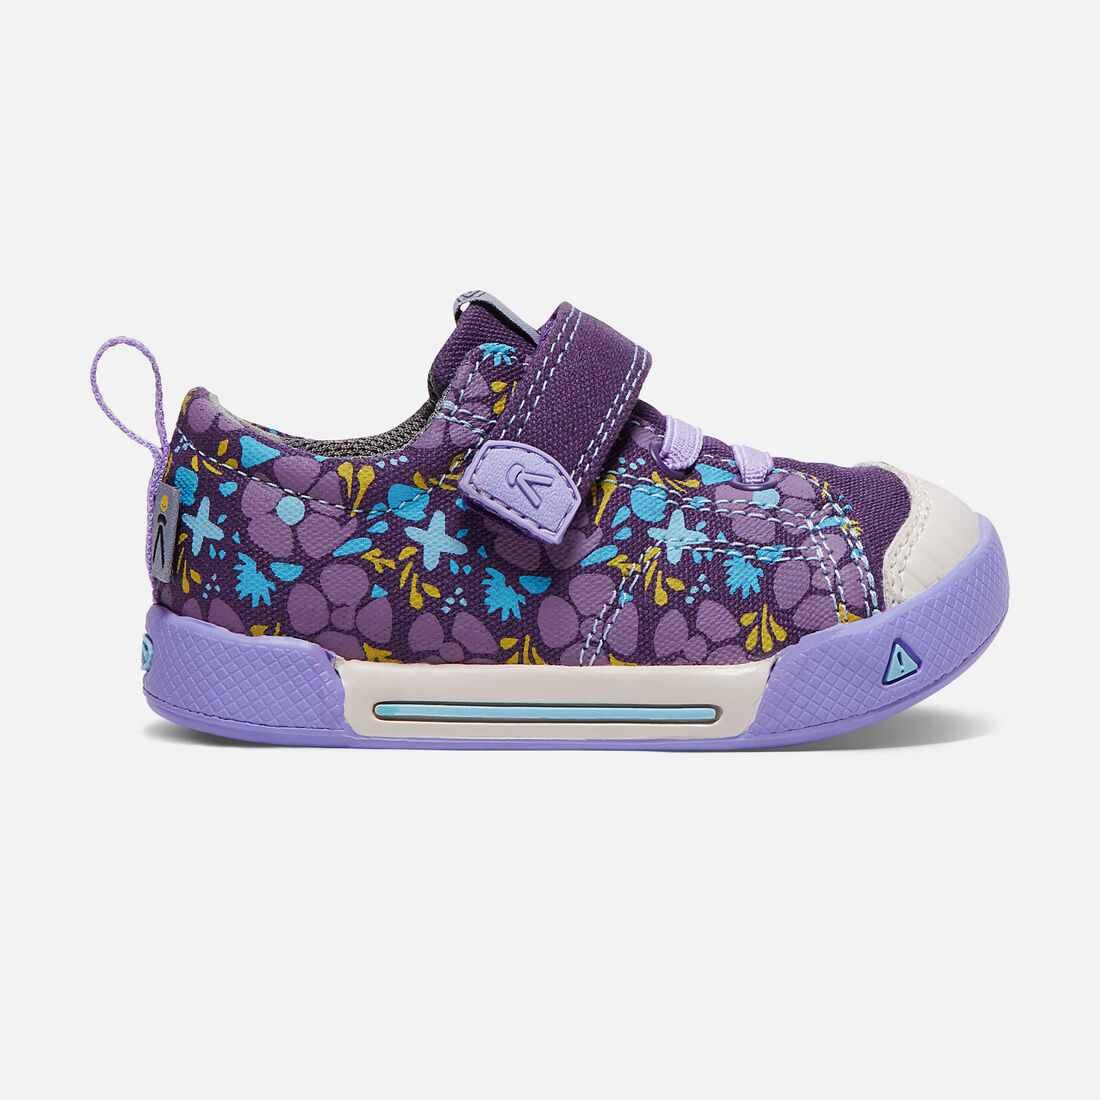 Toddler's ENCANTO FINLEY LOW in Purple Plumeria/Lavender - large view.